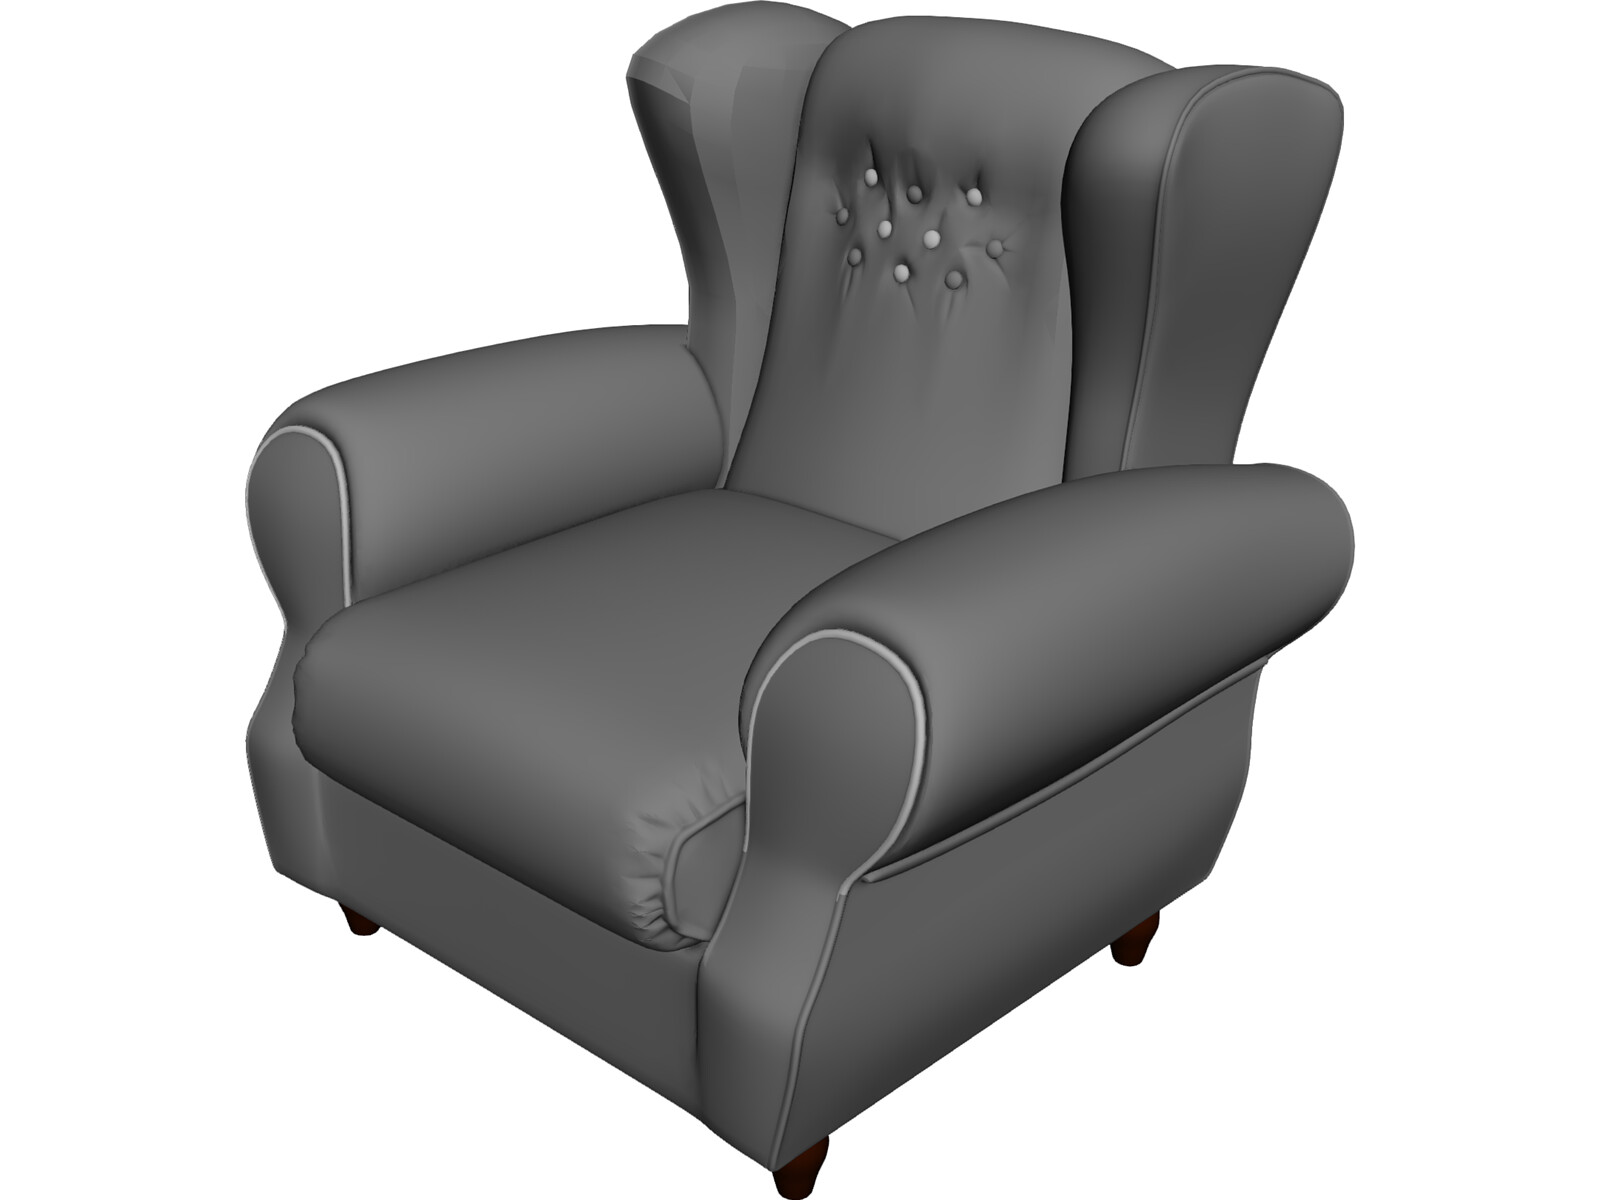 Armchair Old Fashioned 3D Model - 3D CAD Browser